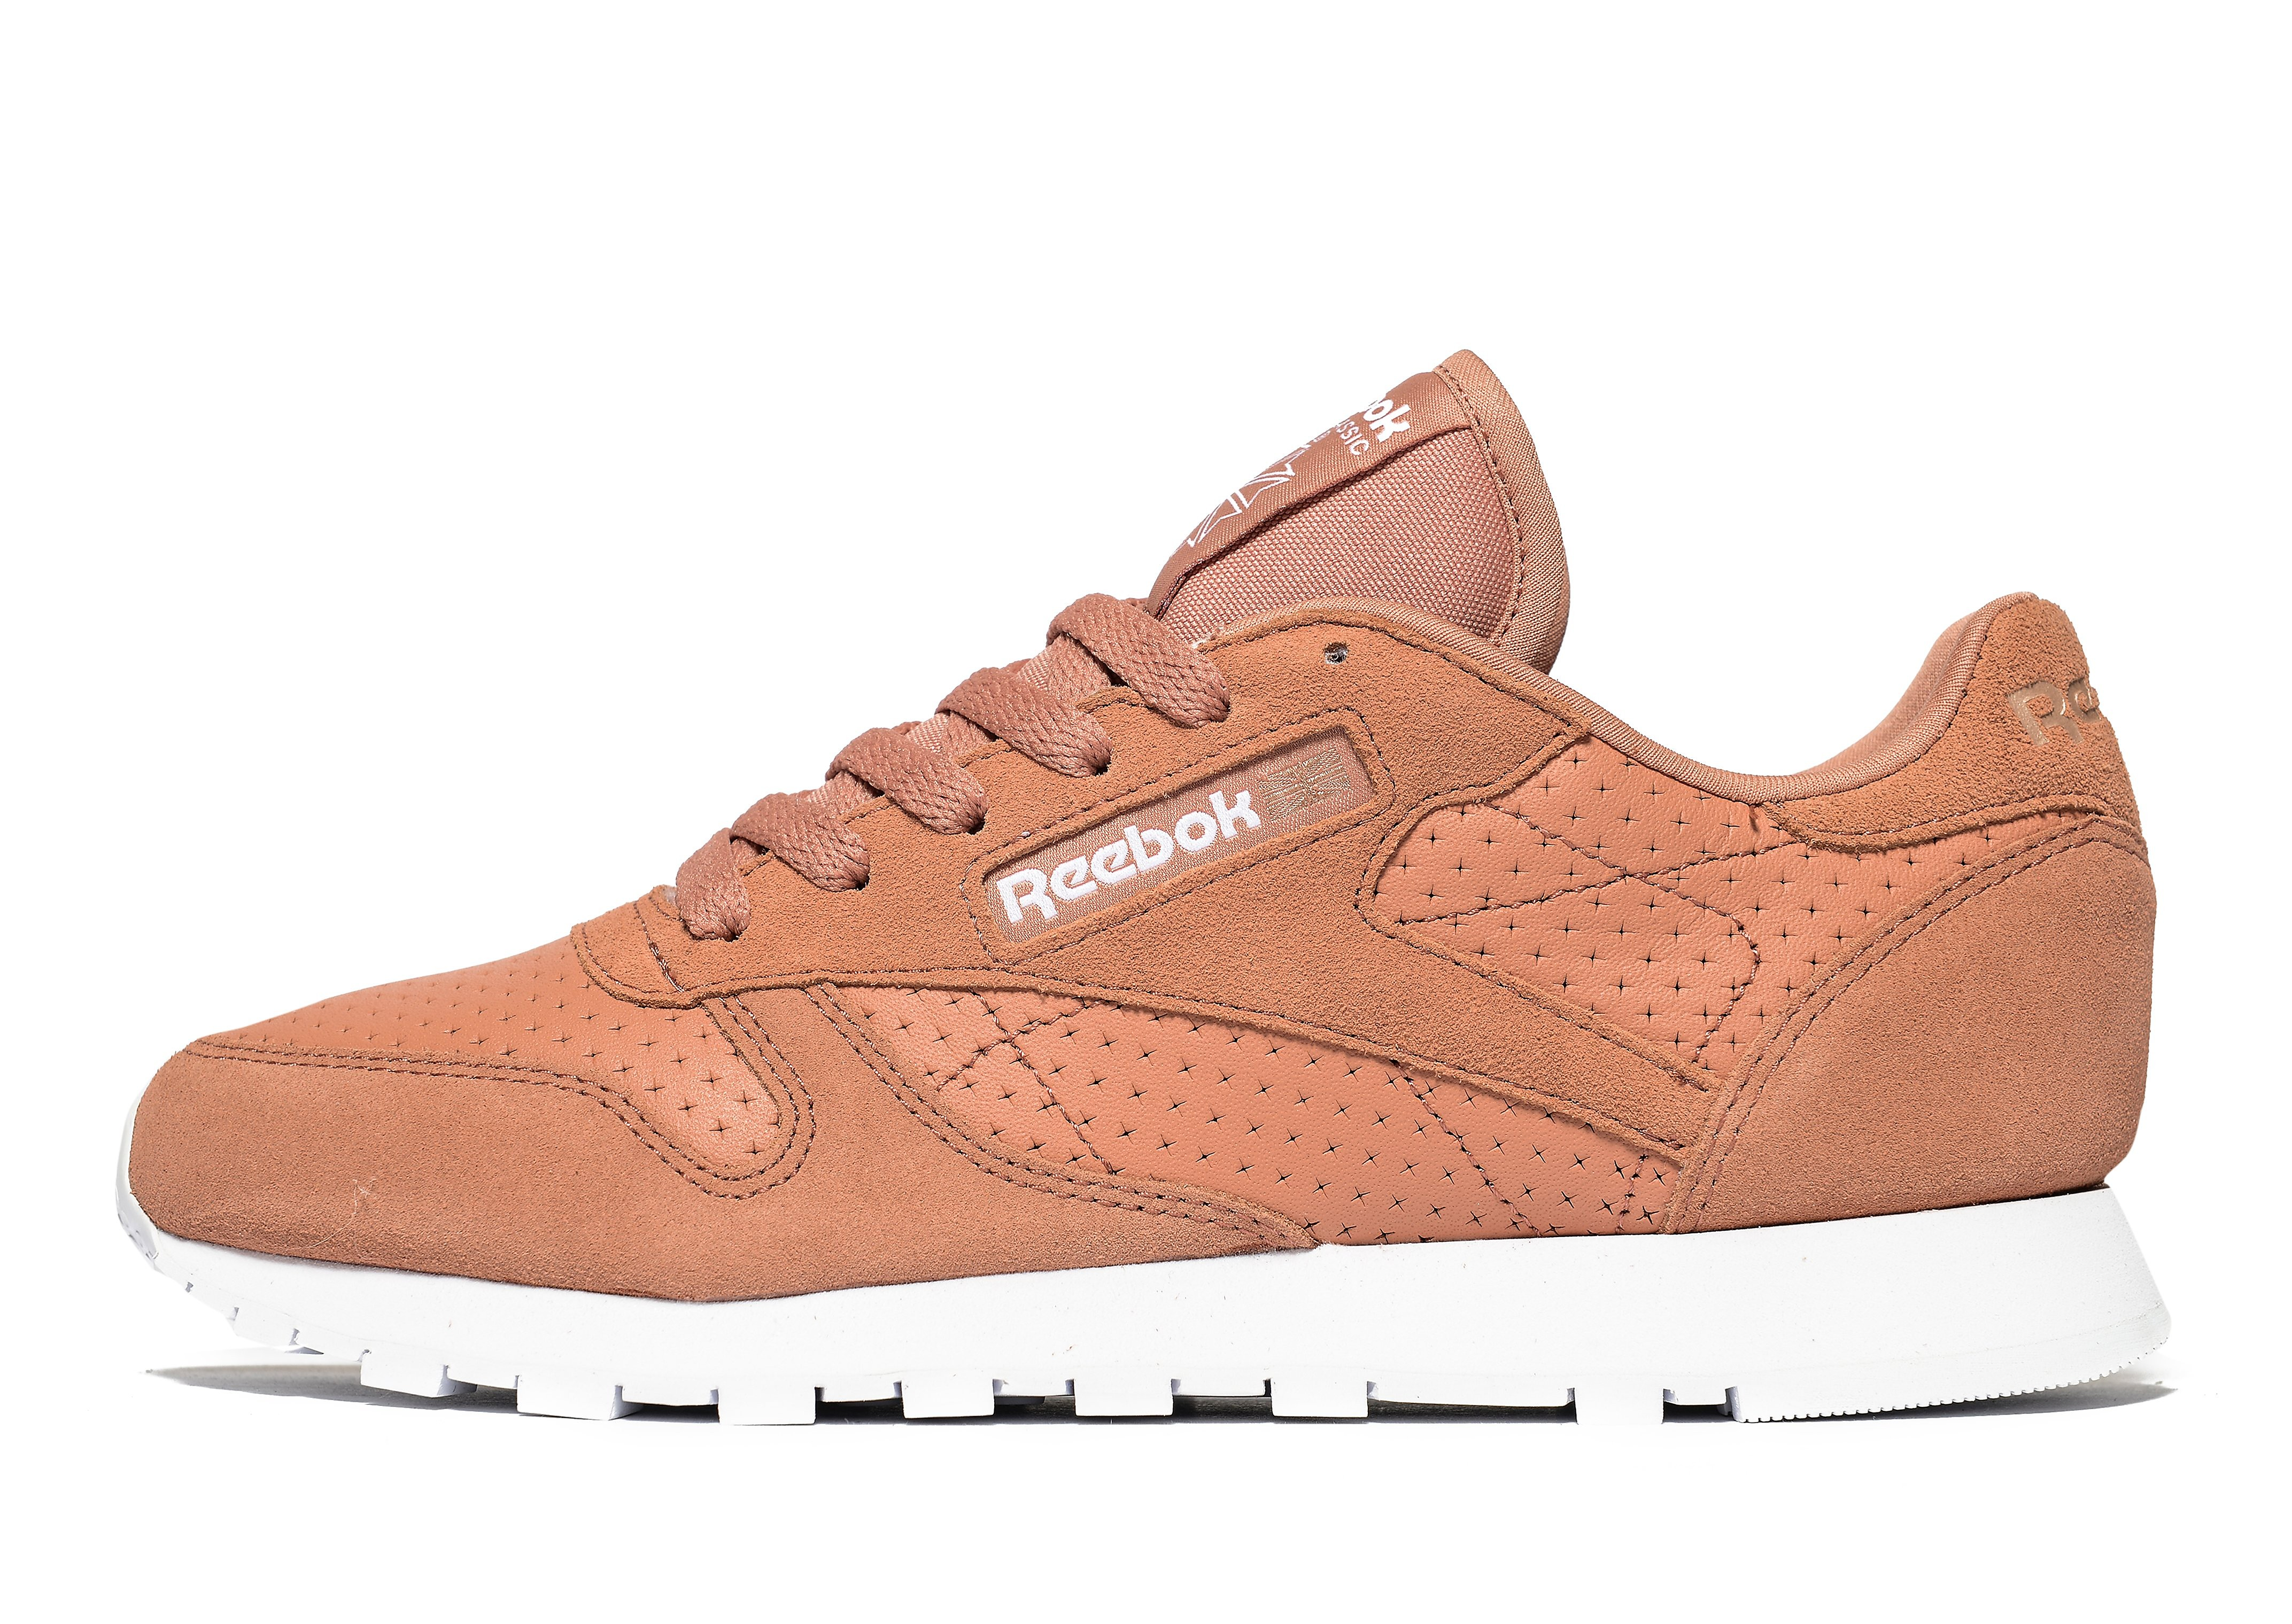 Reebok Classic Leather Perforated Women's